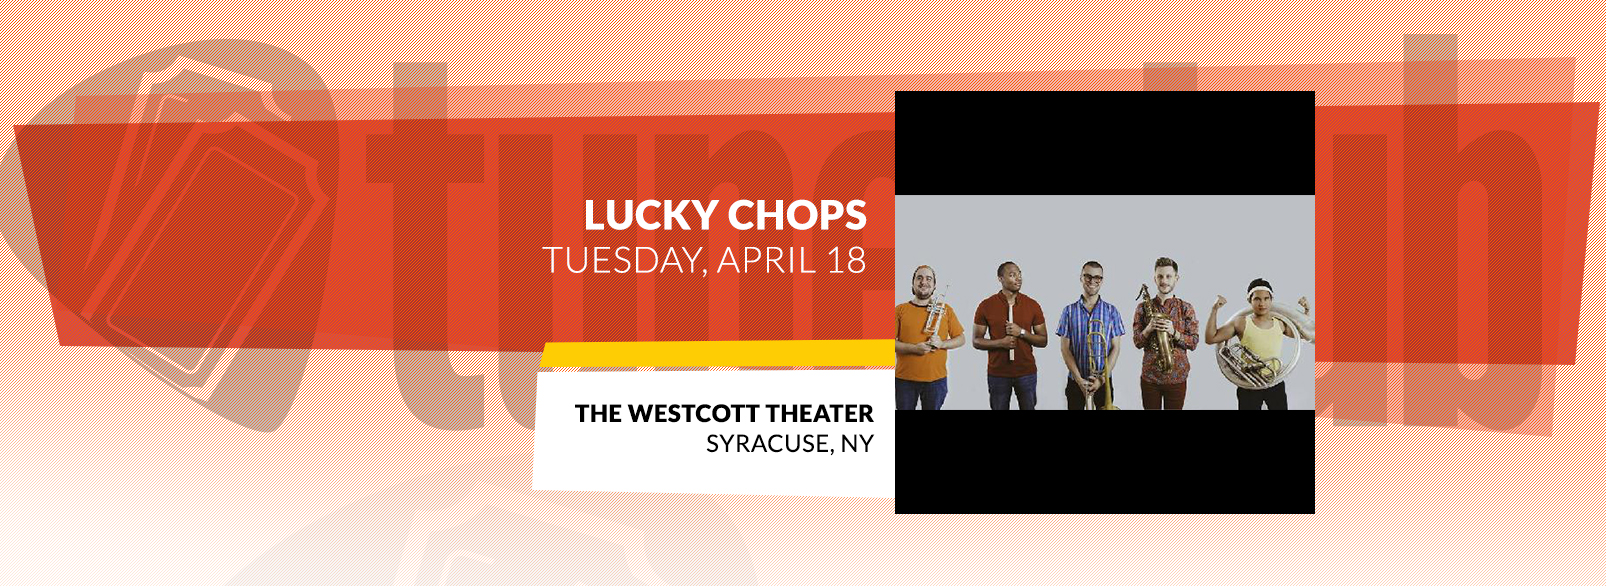 Lucky Chops @ The Westcott Theater